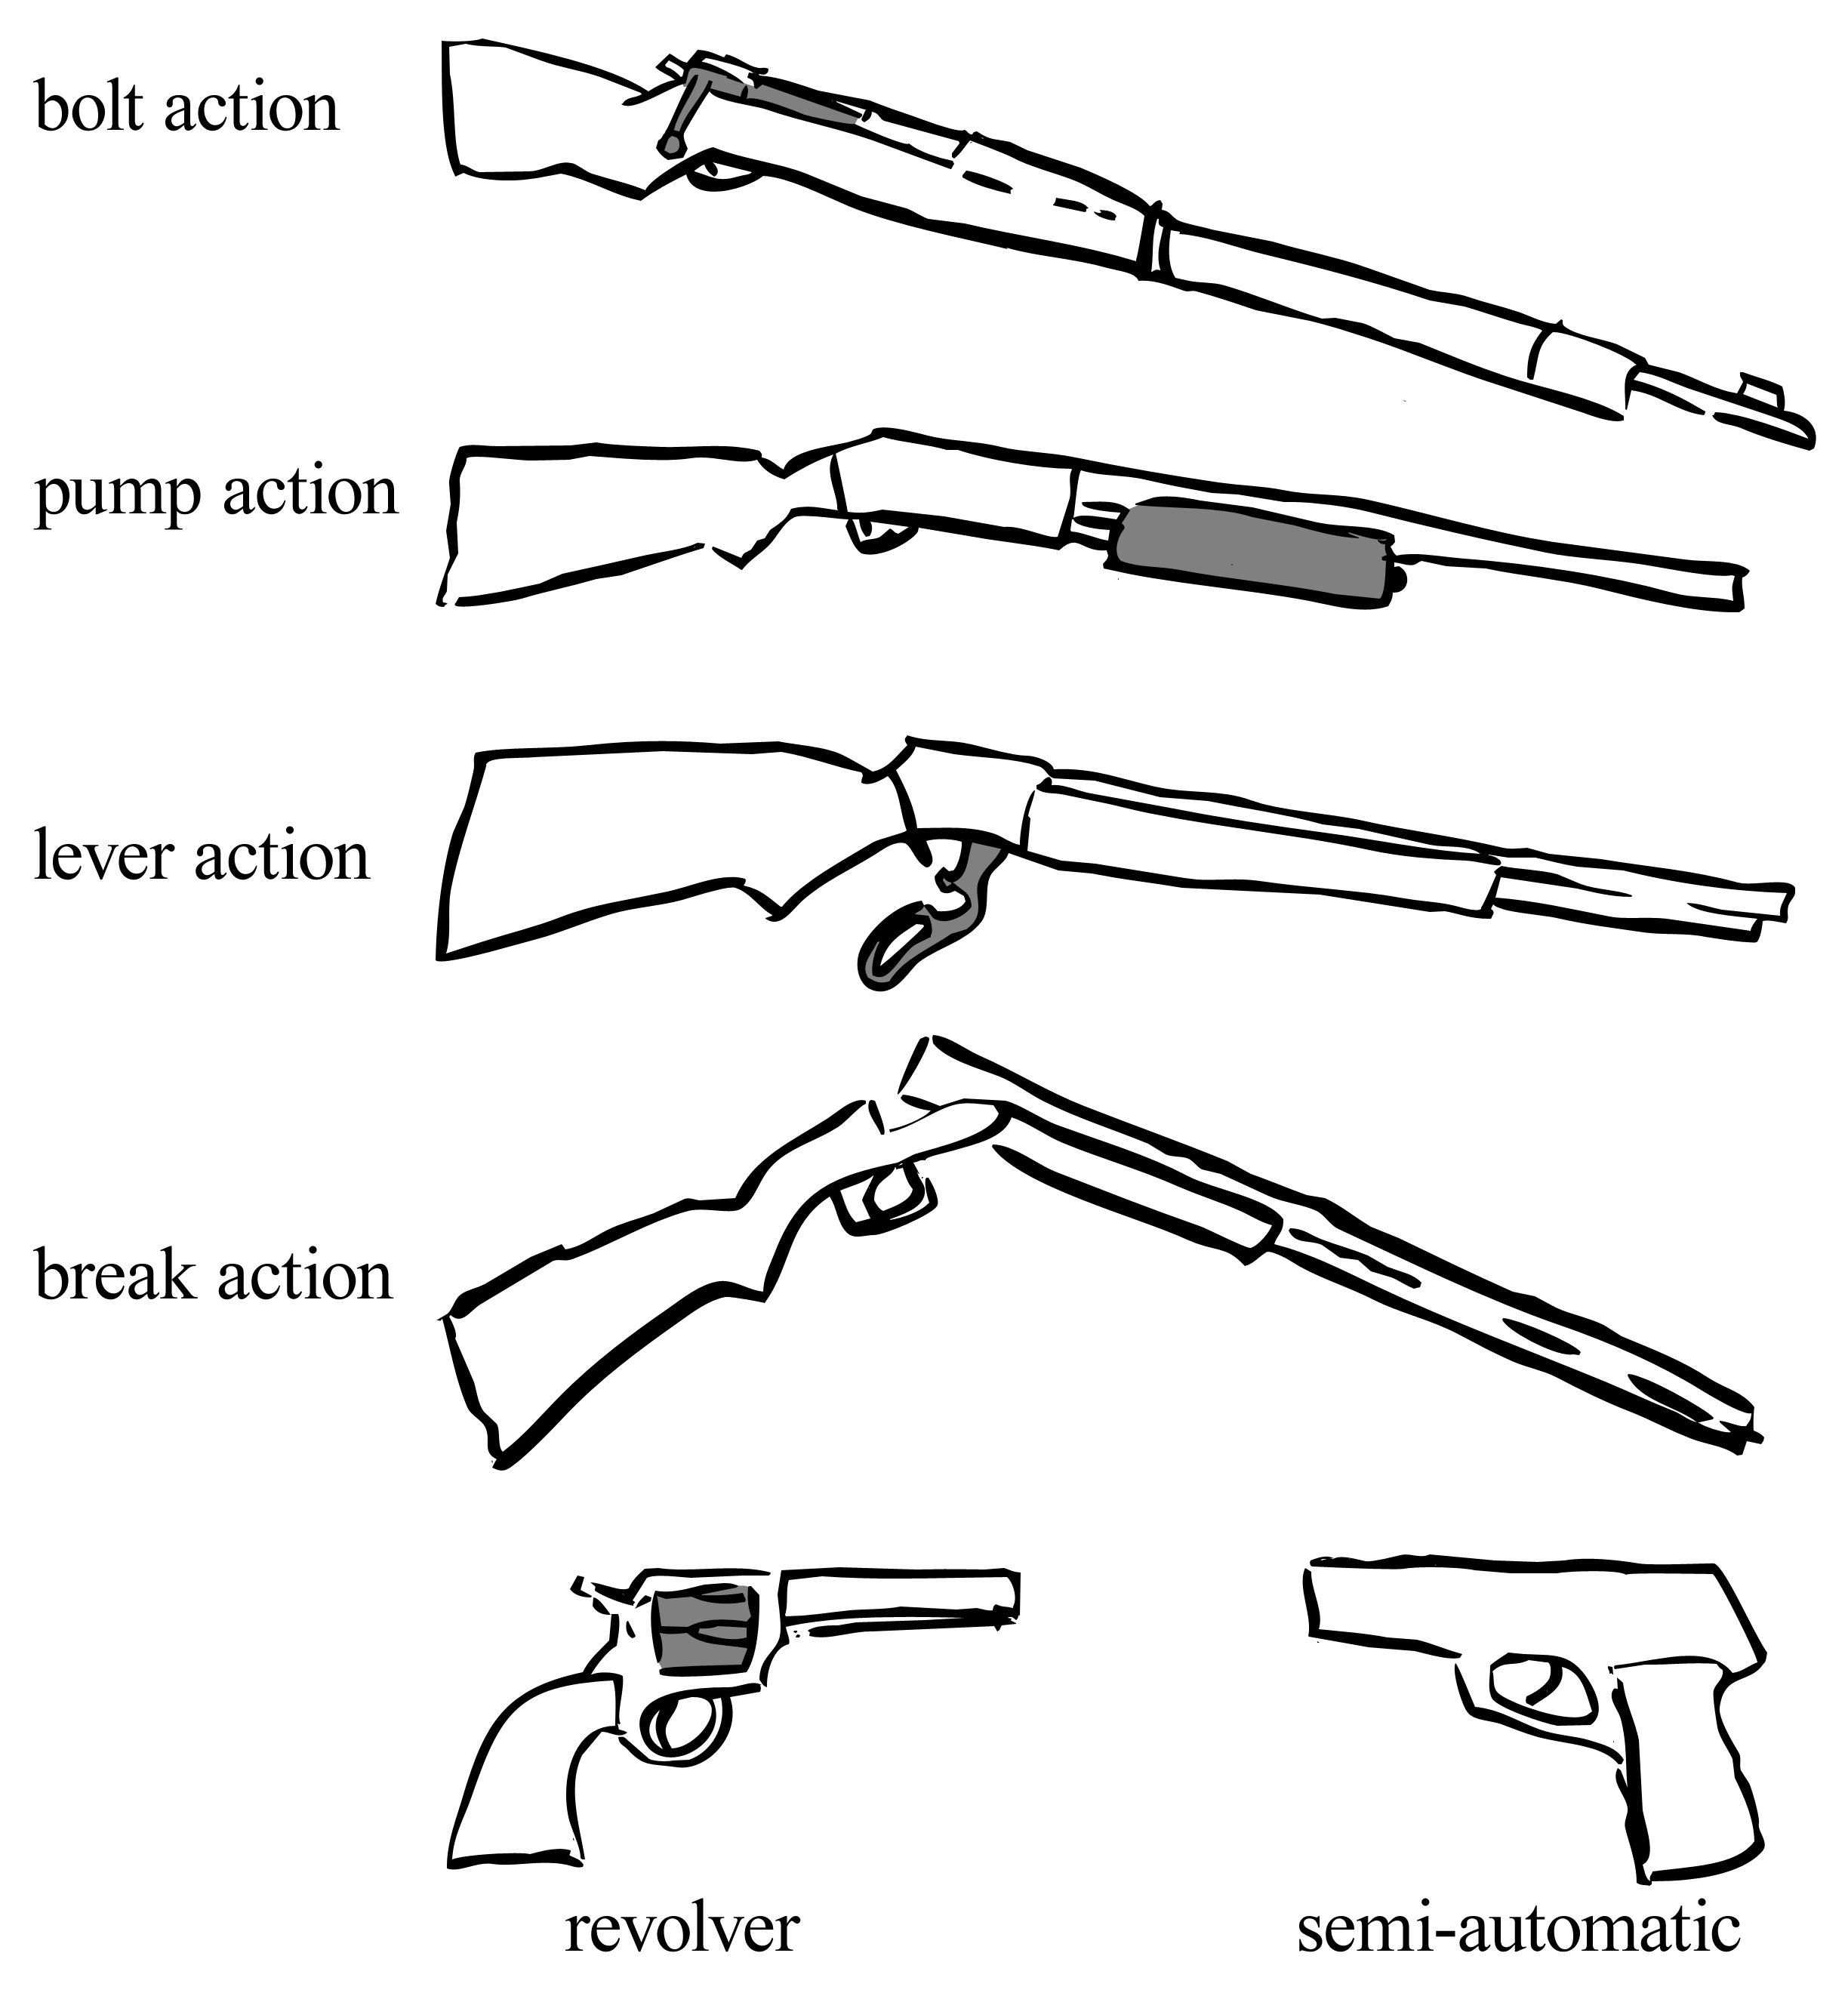 Illustrated Firearm Actions | Prop Agenda